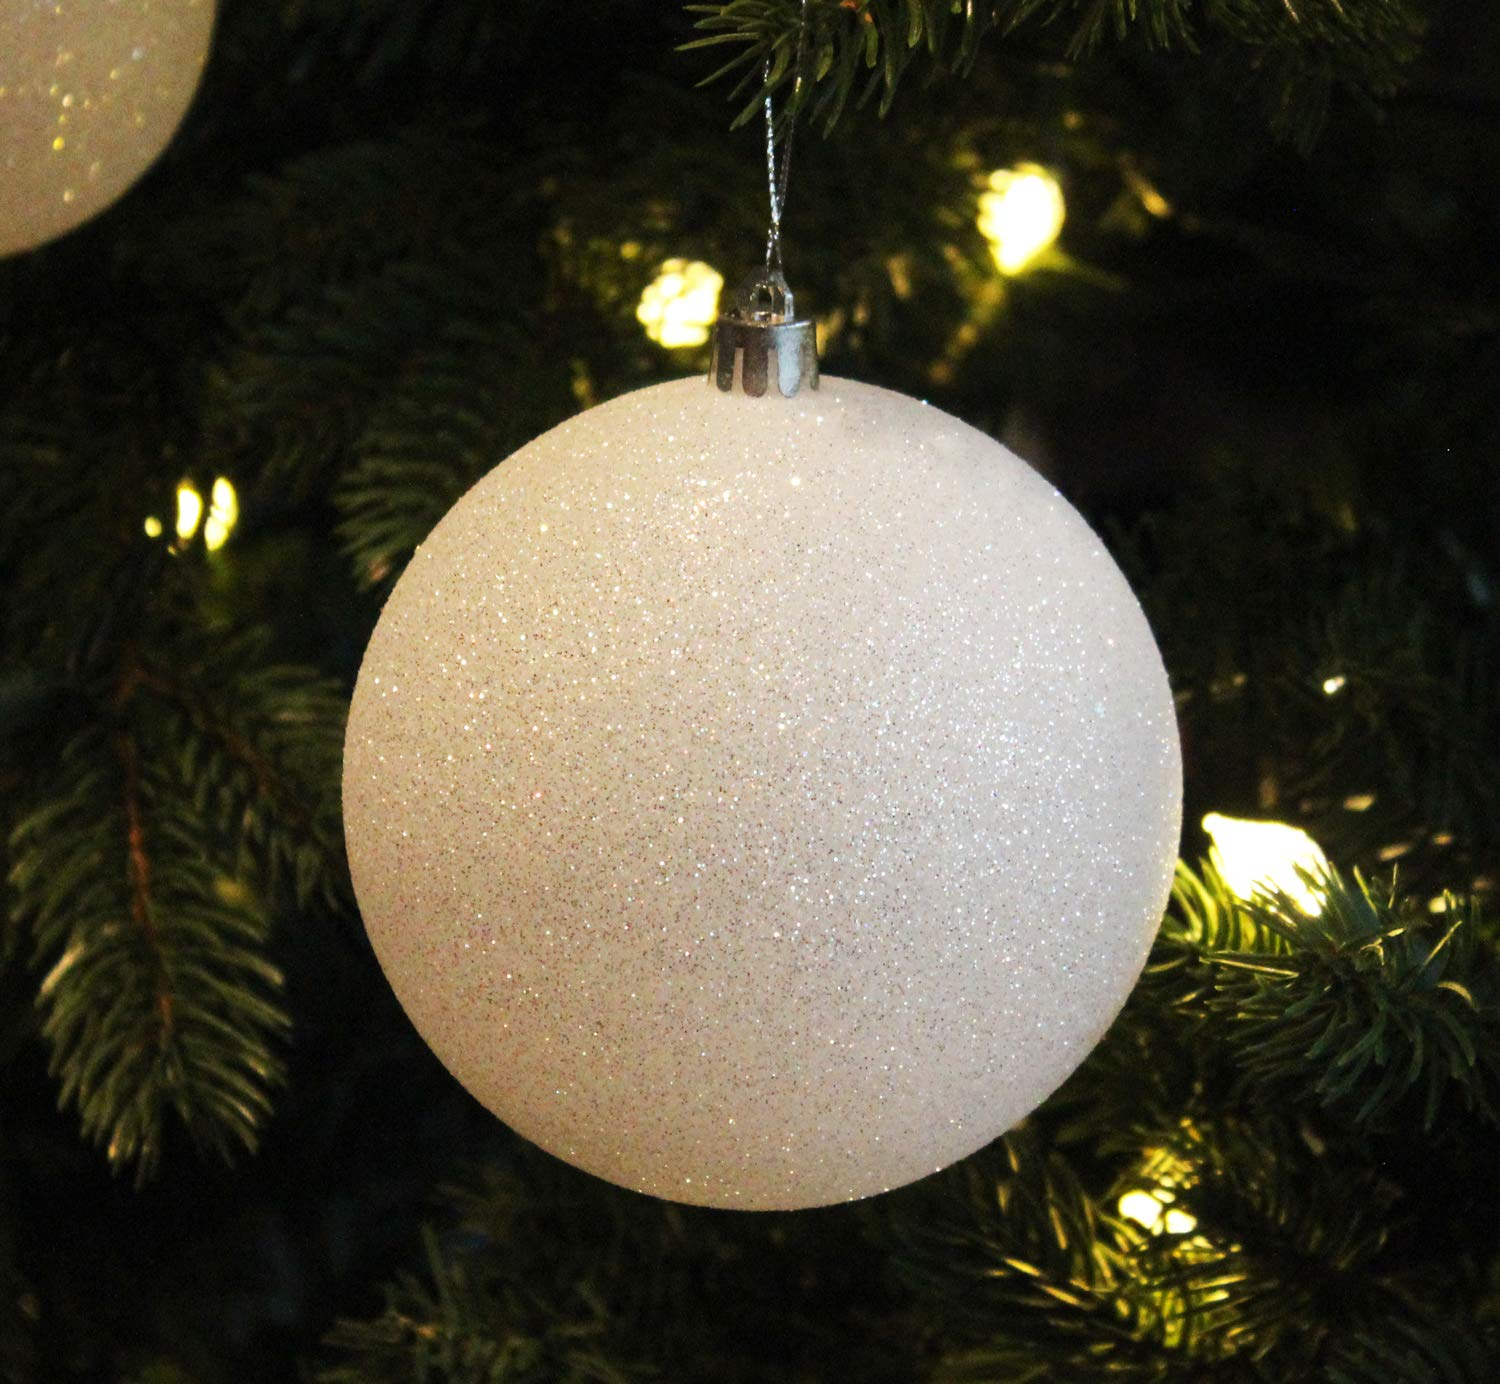 Sleetly Christmas Tree Ball Ornaments, White Snowball, 4.70 inches, Set of 4